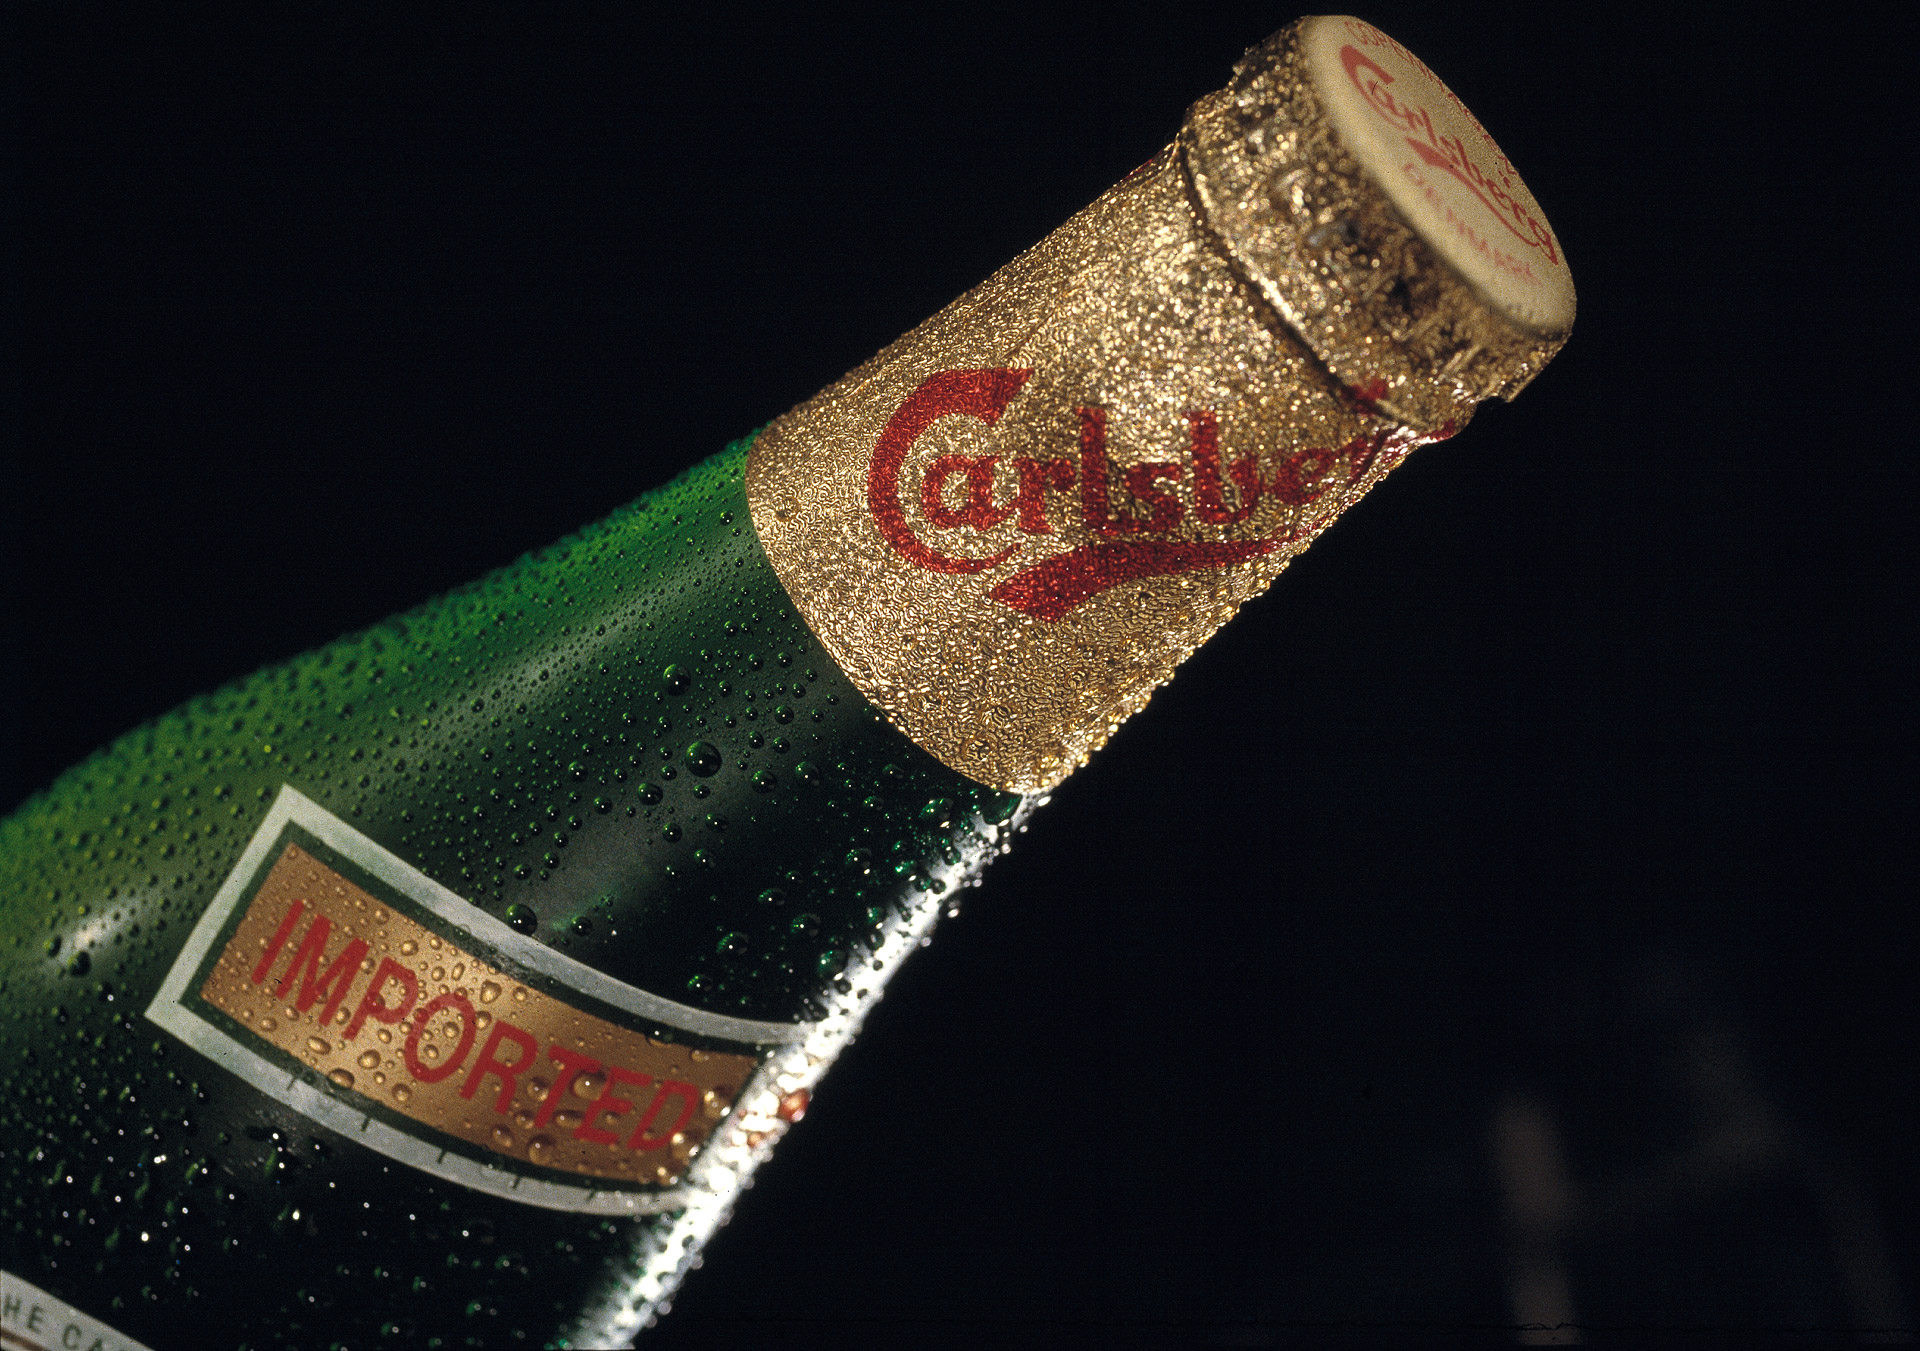 A Carlsberg Imported beer photographed in the studio